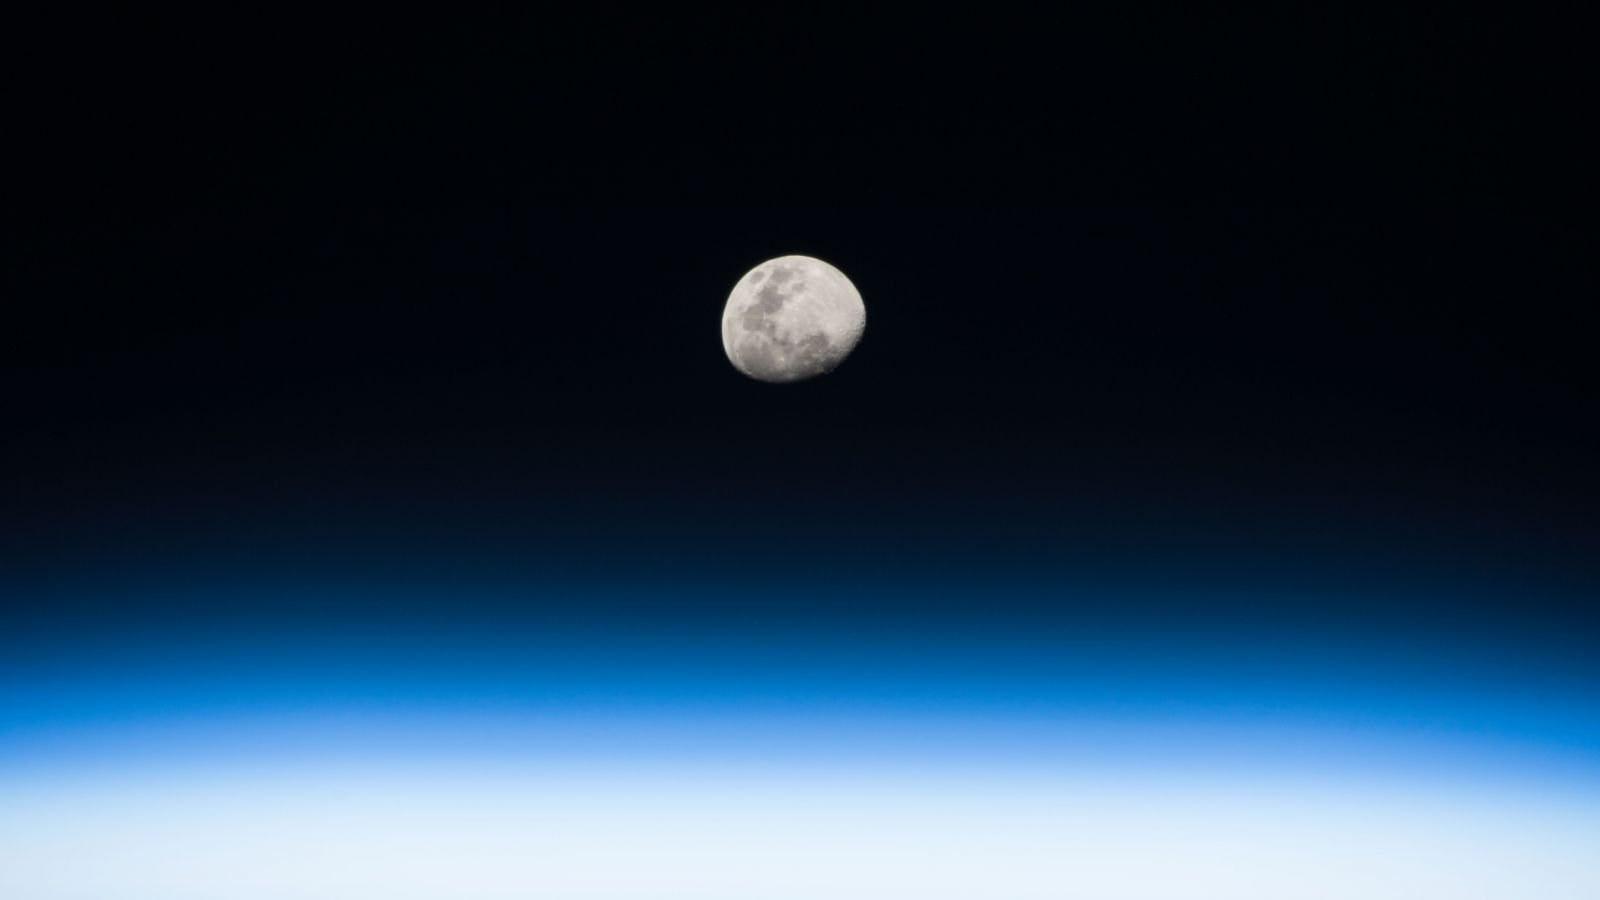 The Moon as seen from orbit. Photo Credit: NASA